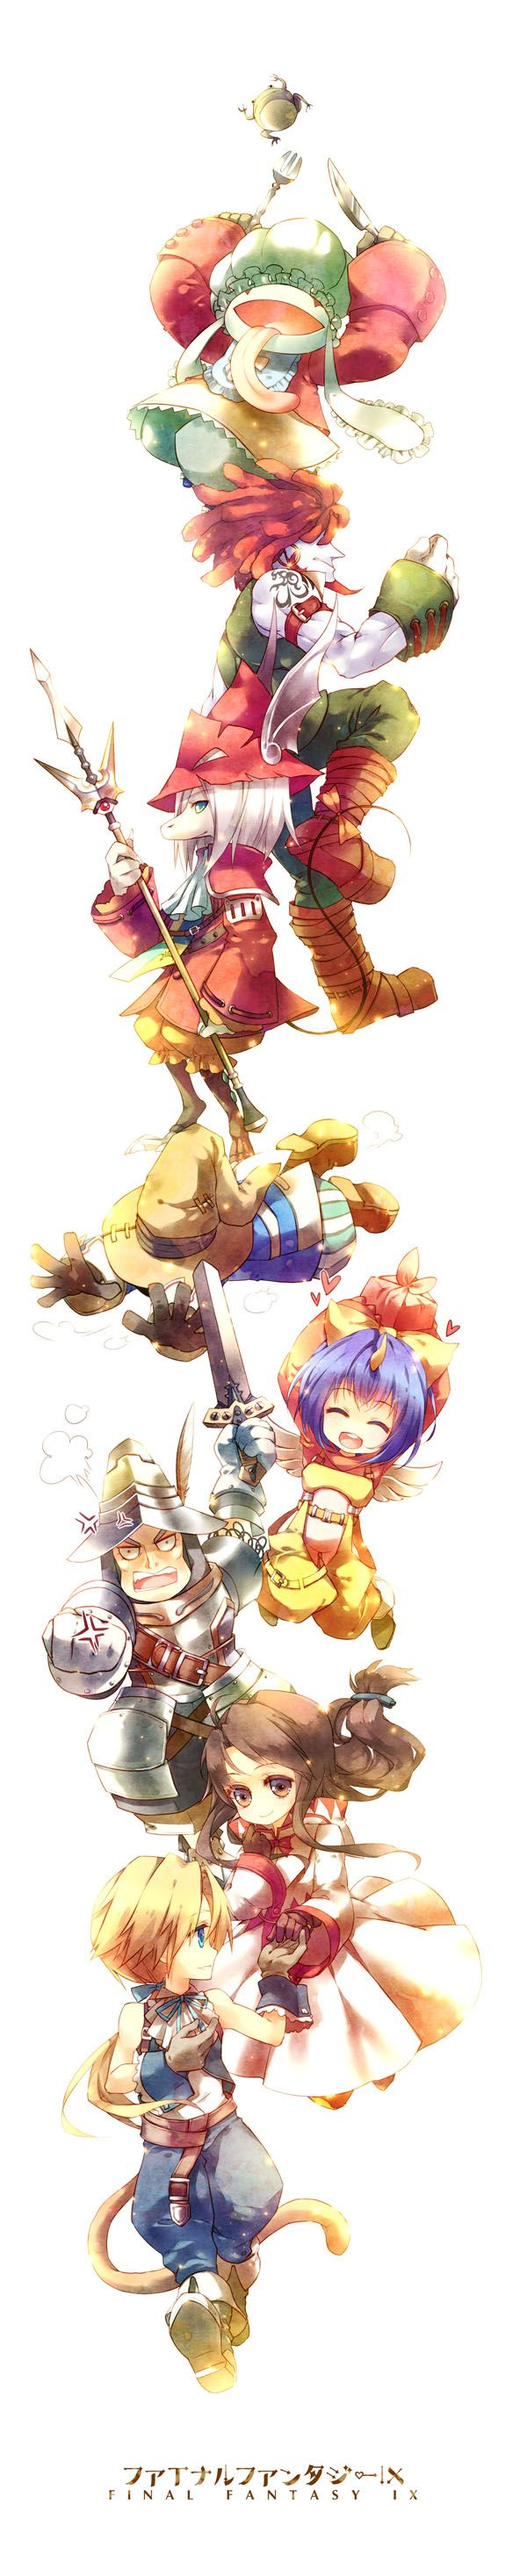 Final Fantasy 9 all the playable characters.                              …